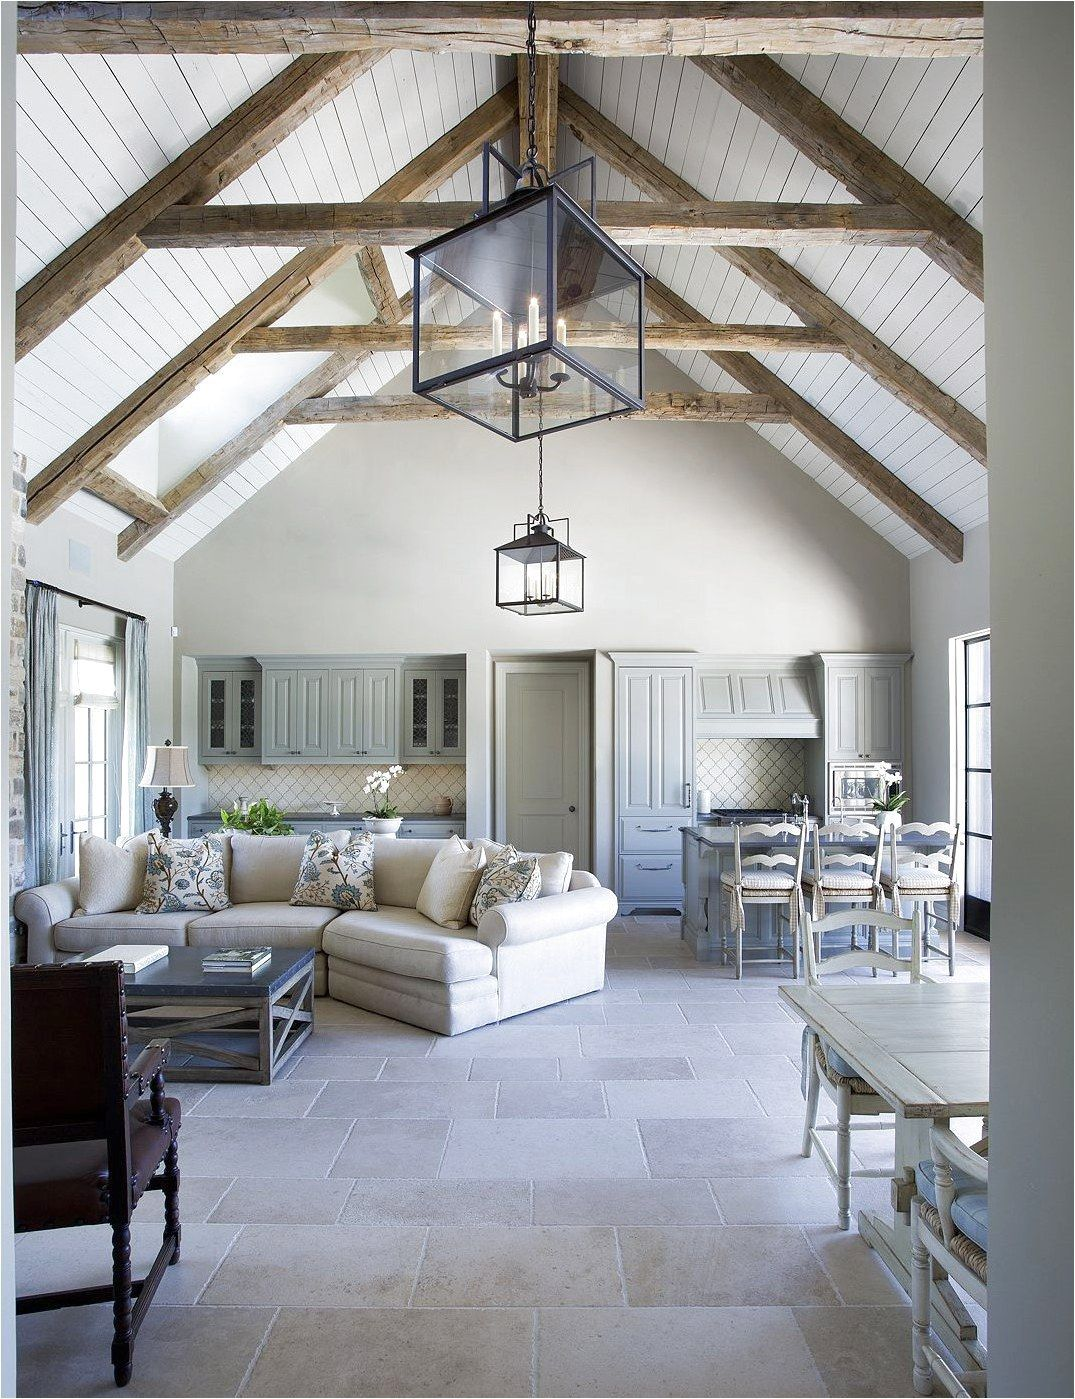 Cathedral Ceilings With Exposed Beams White Washed Bright Interior Stone Floor Cer Vaulted Ceiling Living Room Cathedral Ceiling Living Room Exposed Beams